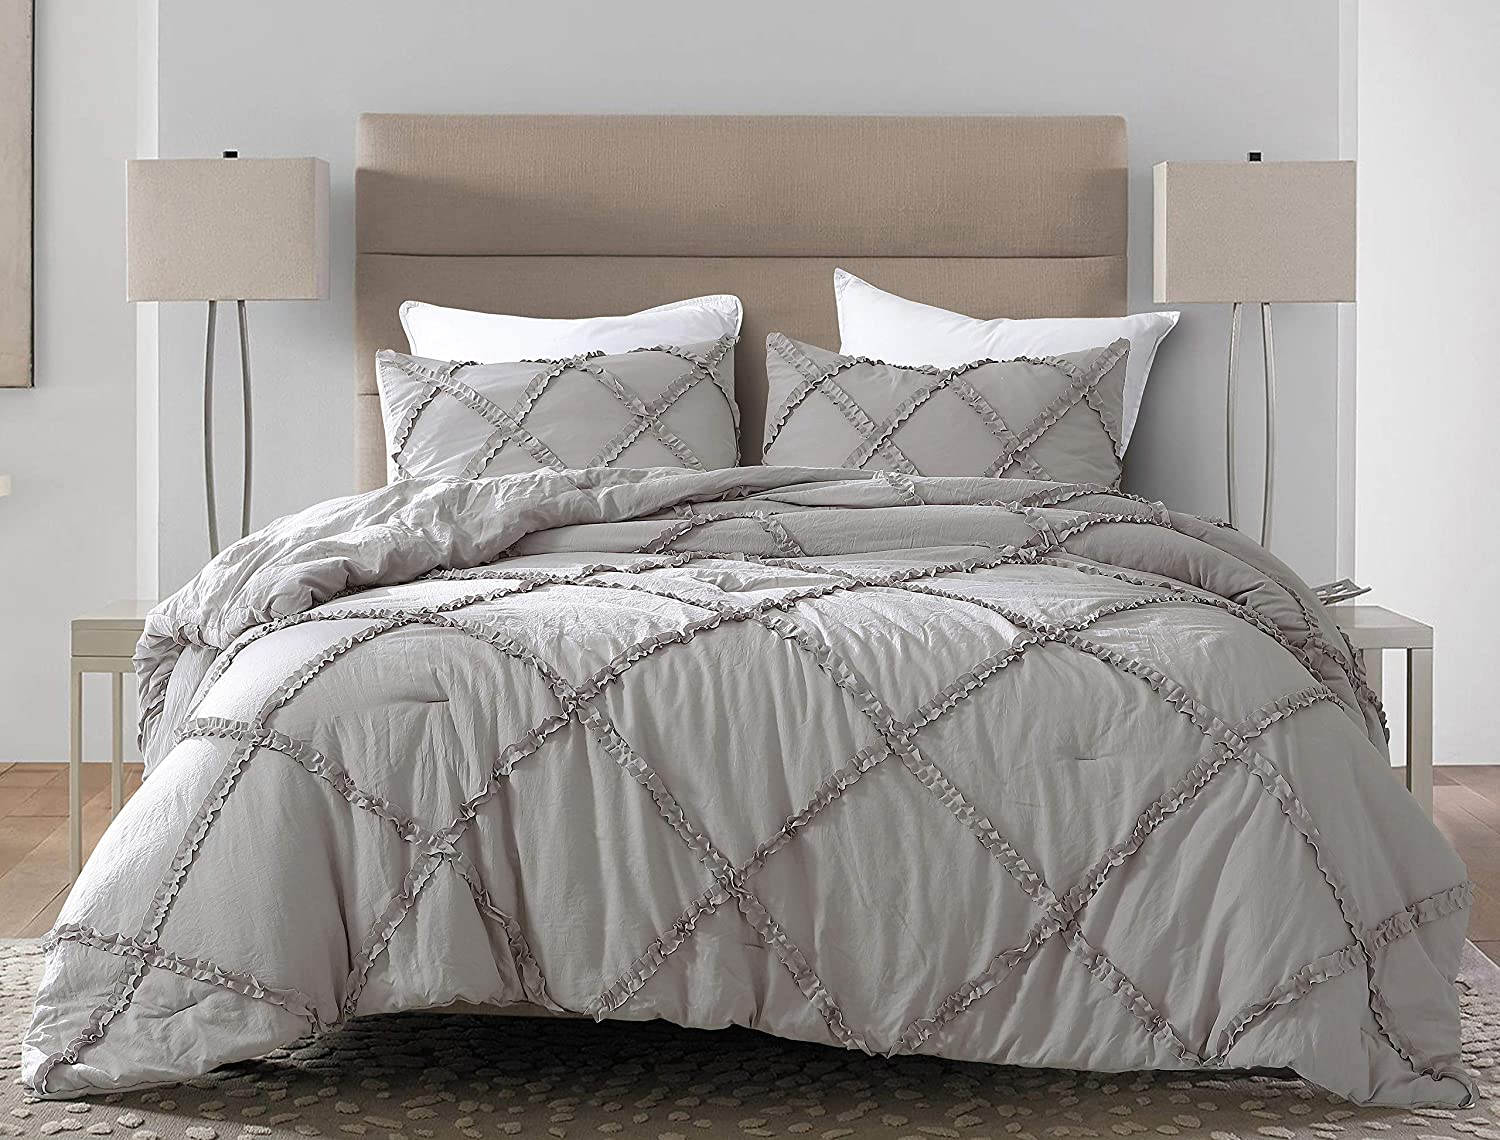 Chezmoi Collection Vivian 3-Piece Diamond Ruffle Quilted Trim Soft Washed Microfiber Comforter Set (Queen, Gray)